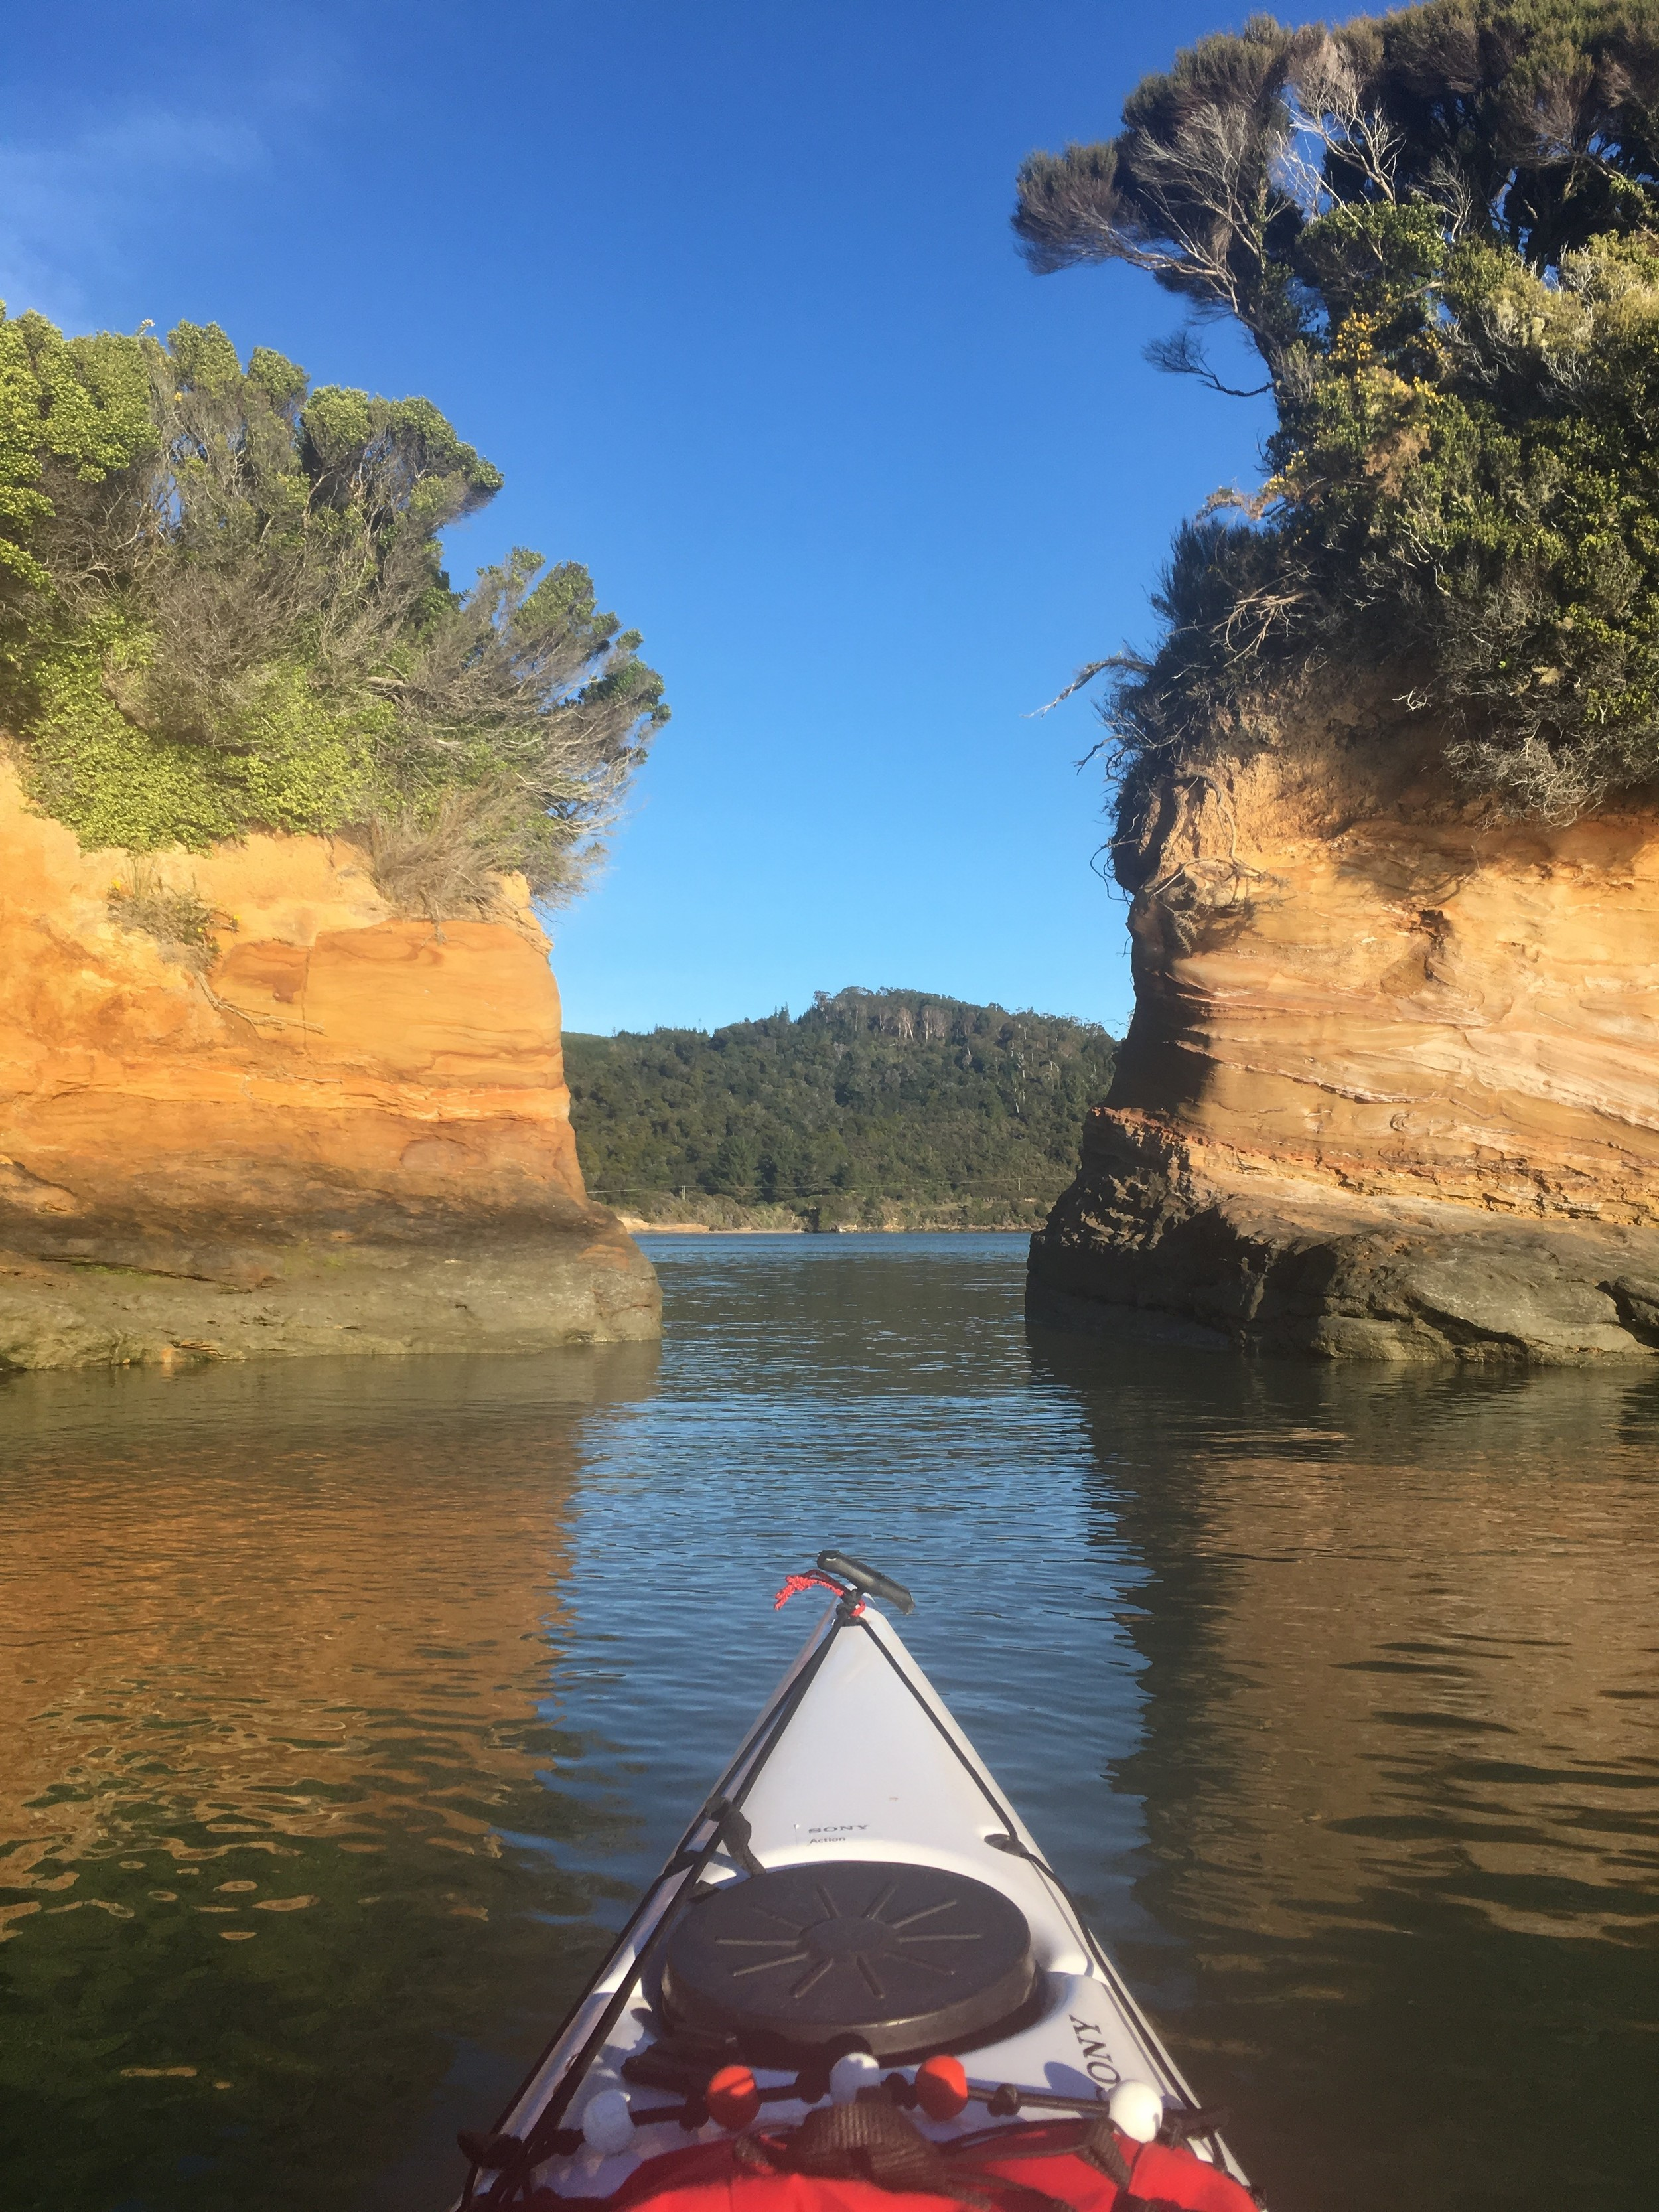 Today's paddling on the water.